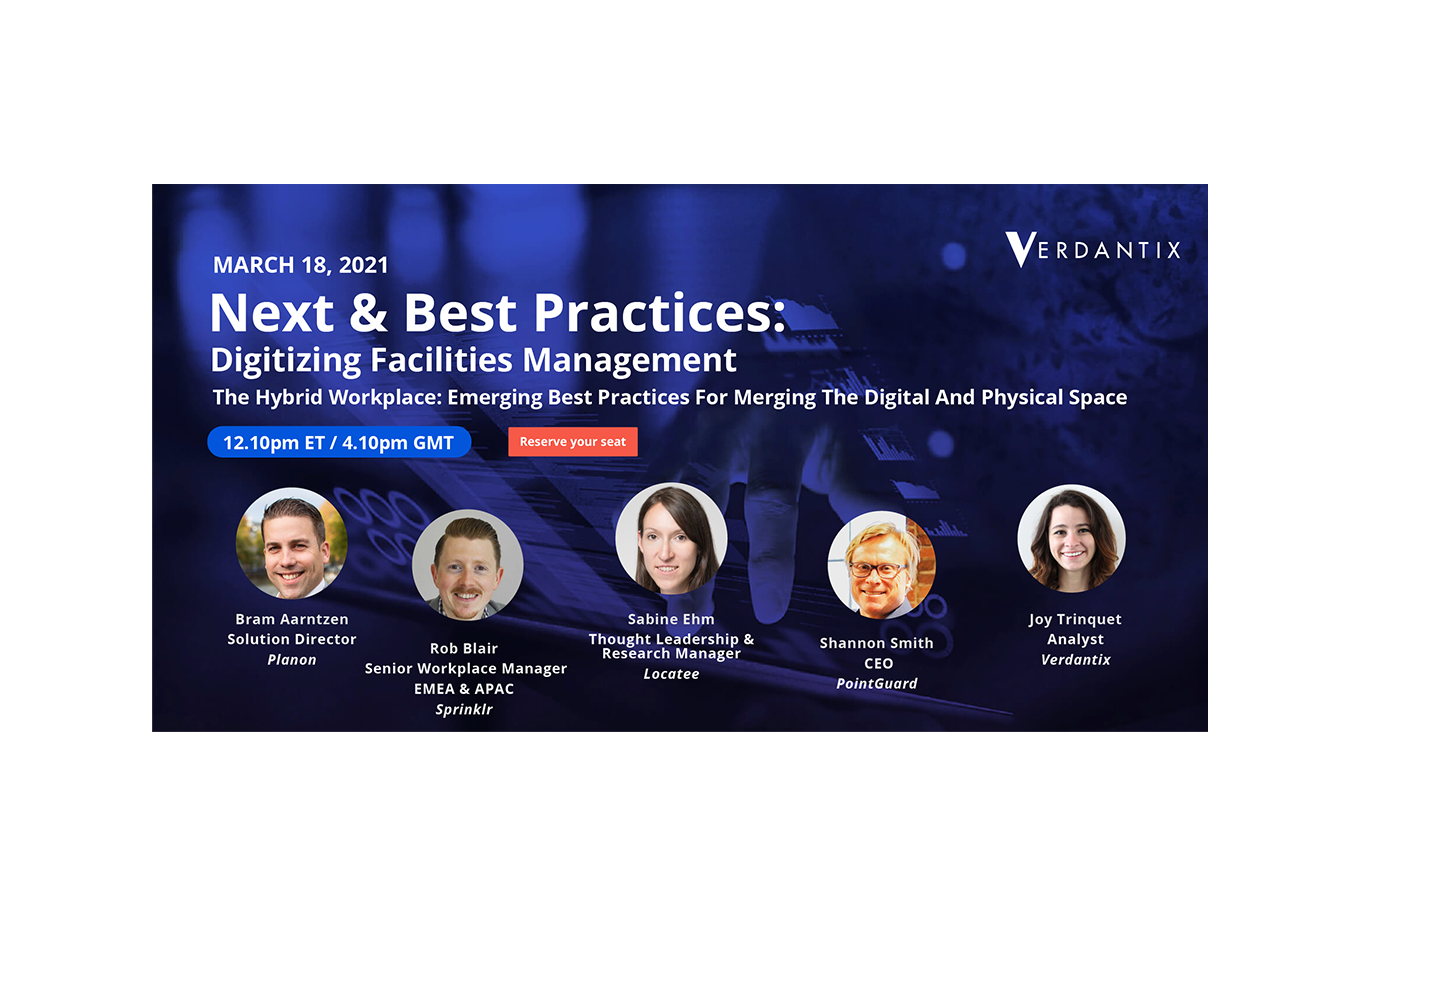 Next & Best Practices: Digitizing Facilities Management – Verdantix